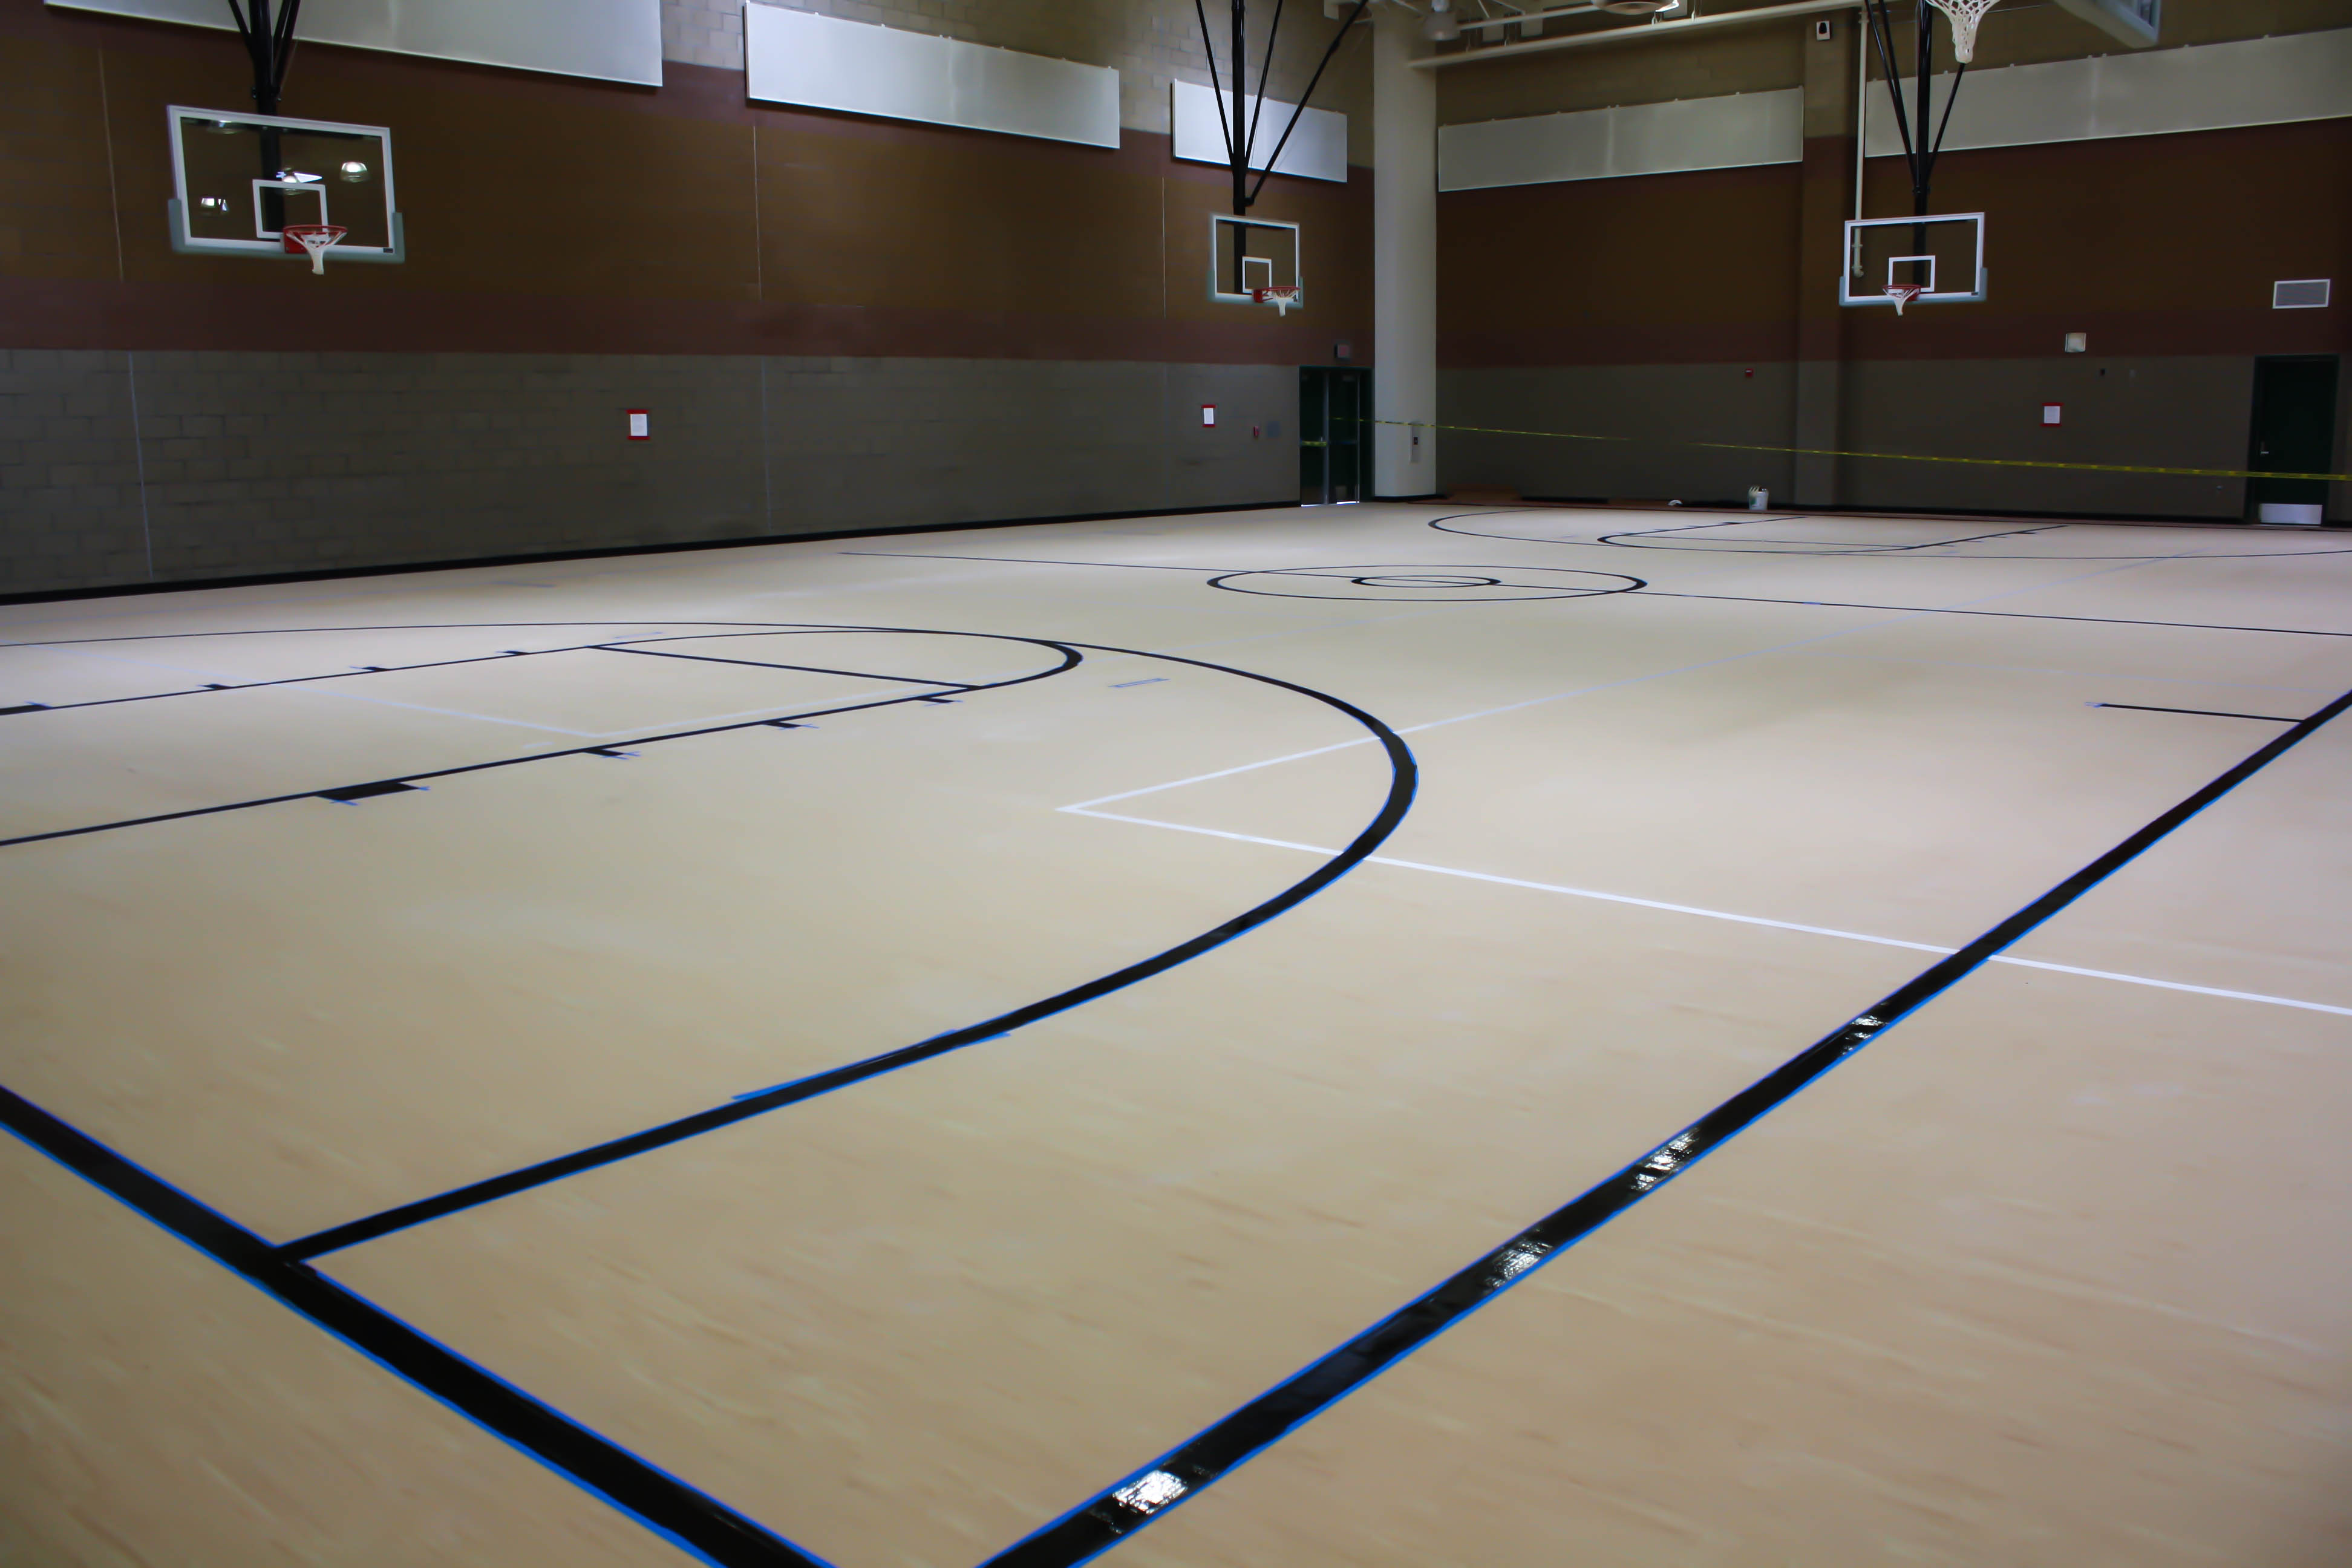 floor almost done gym october opening grand bleachers new and beginning news painting